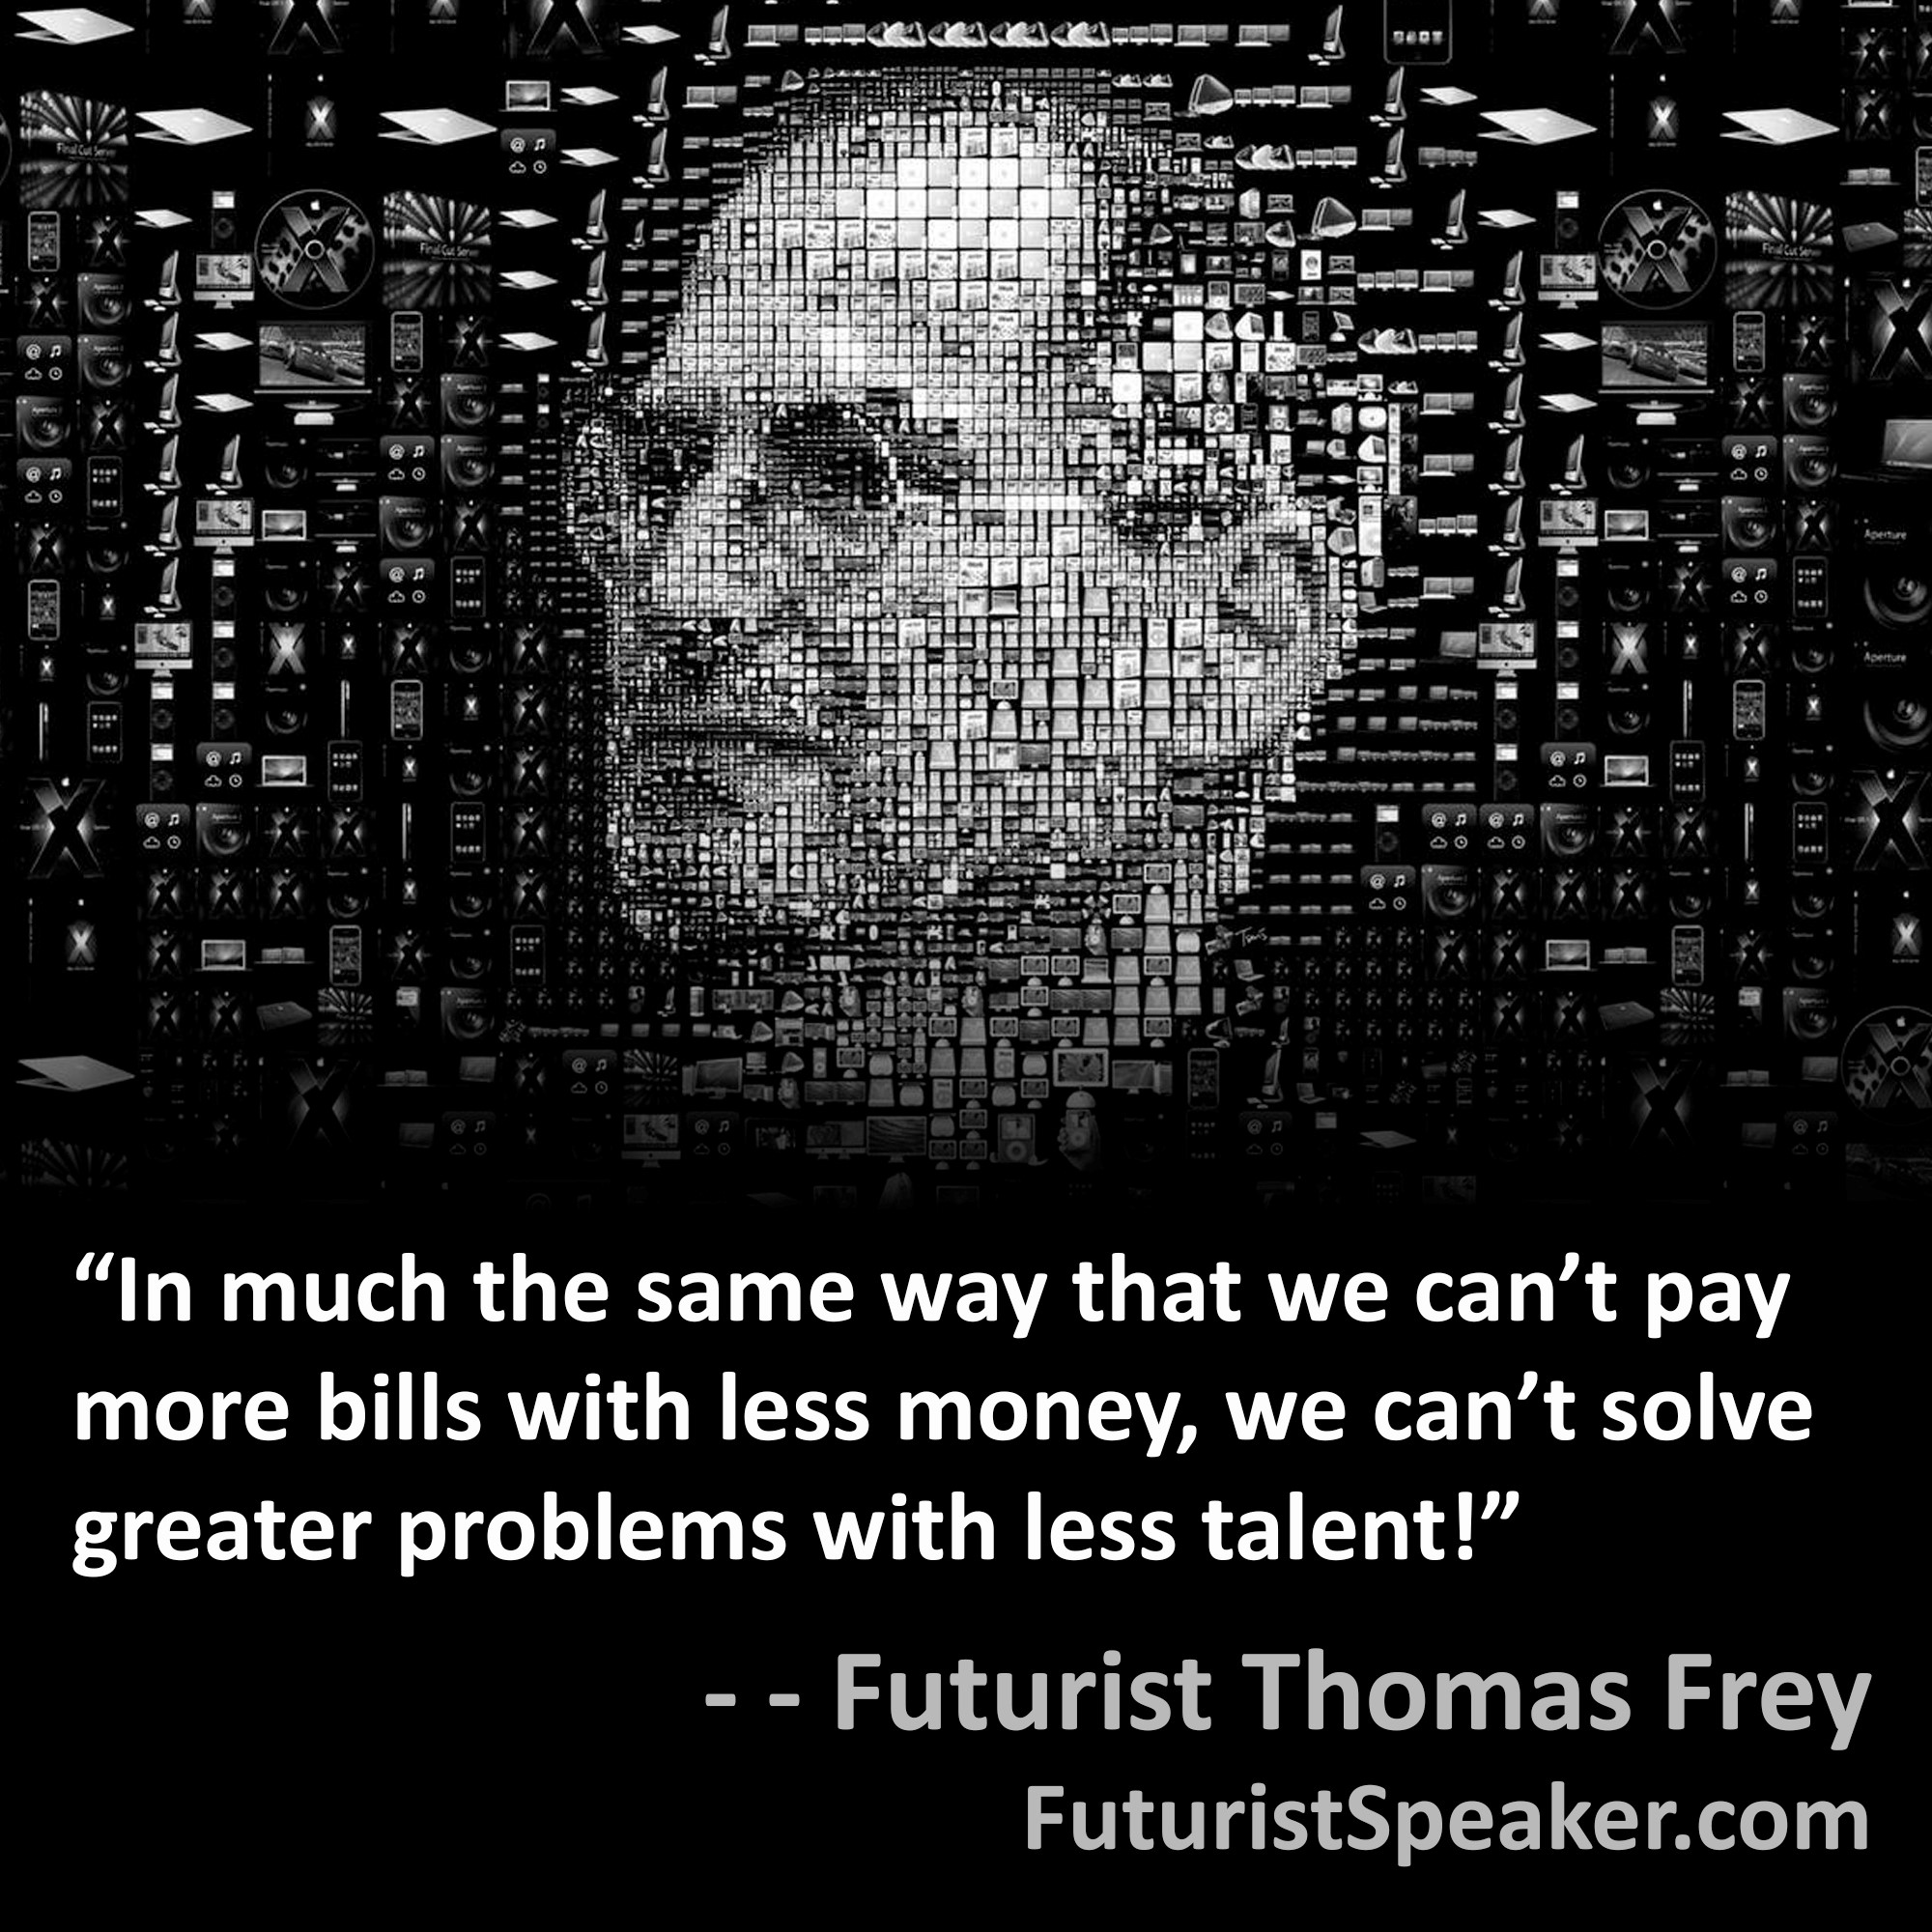 Thomas Frey Futurist Speaker Famous Quote: In much the same way that we cannot pay more bills with less money, we cannot solve greater problems with less talent.